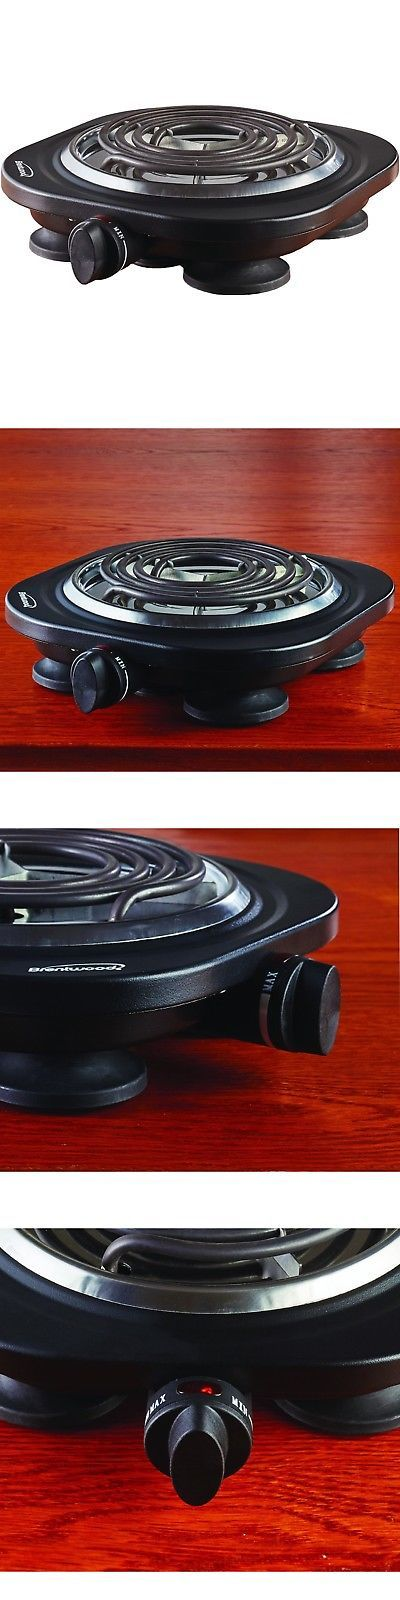 7c35077b79c Burners and Hot Plates 177751  1000W Single Burner Electric Black Portable  Hot Plate Countertop Camping Stove -  BUY IT NOW ONLY   17.07 on eBay!